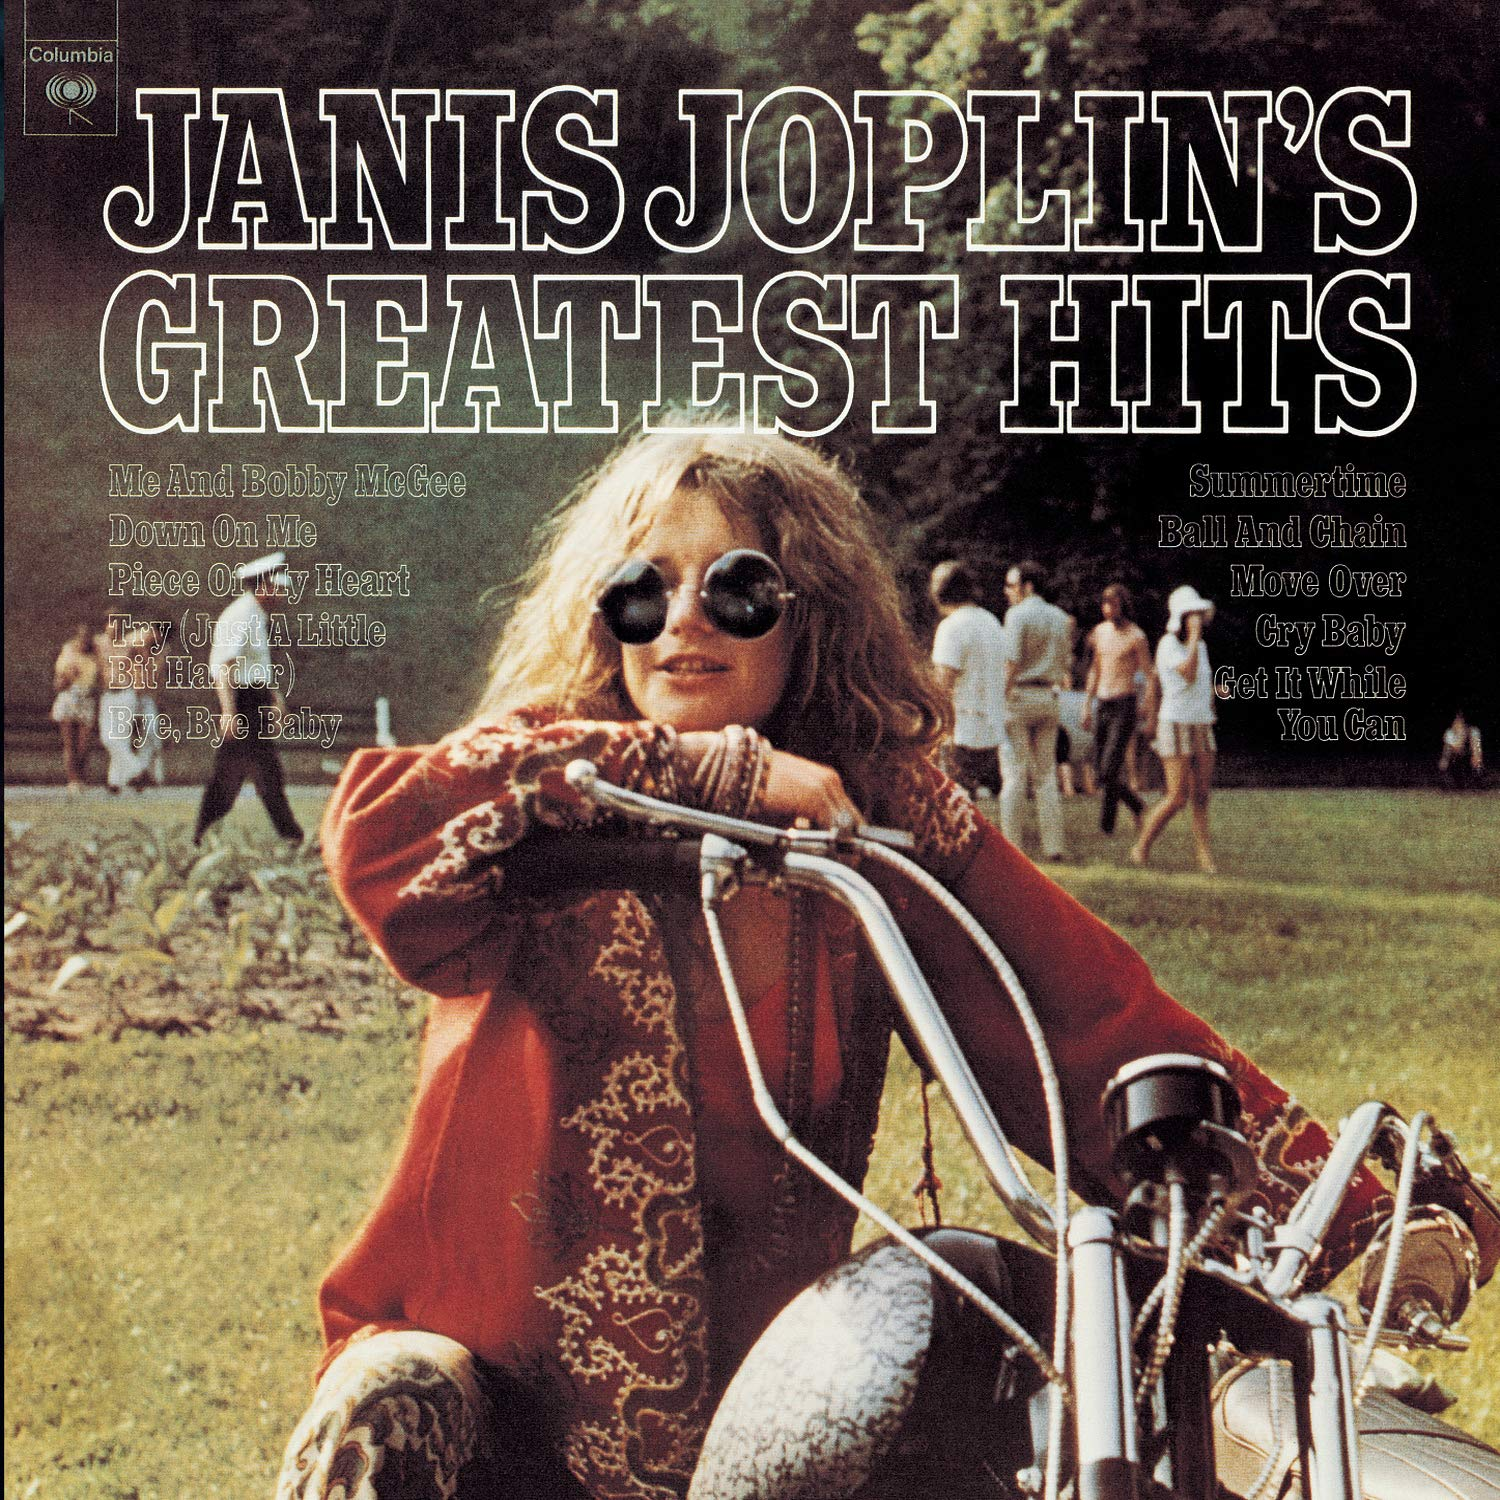 JANIS JOPLIN'S - GREATEST HITS - VINYL LP - Wah Wah Records